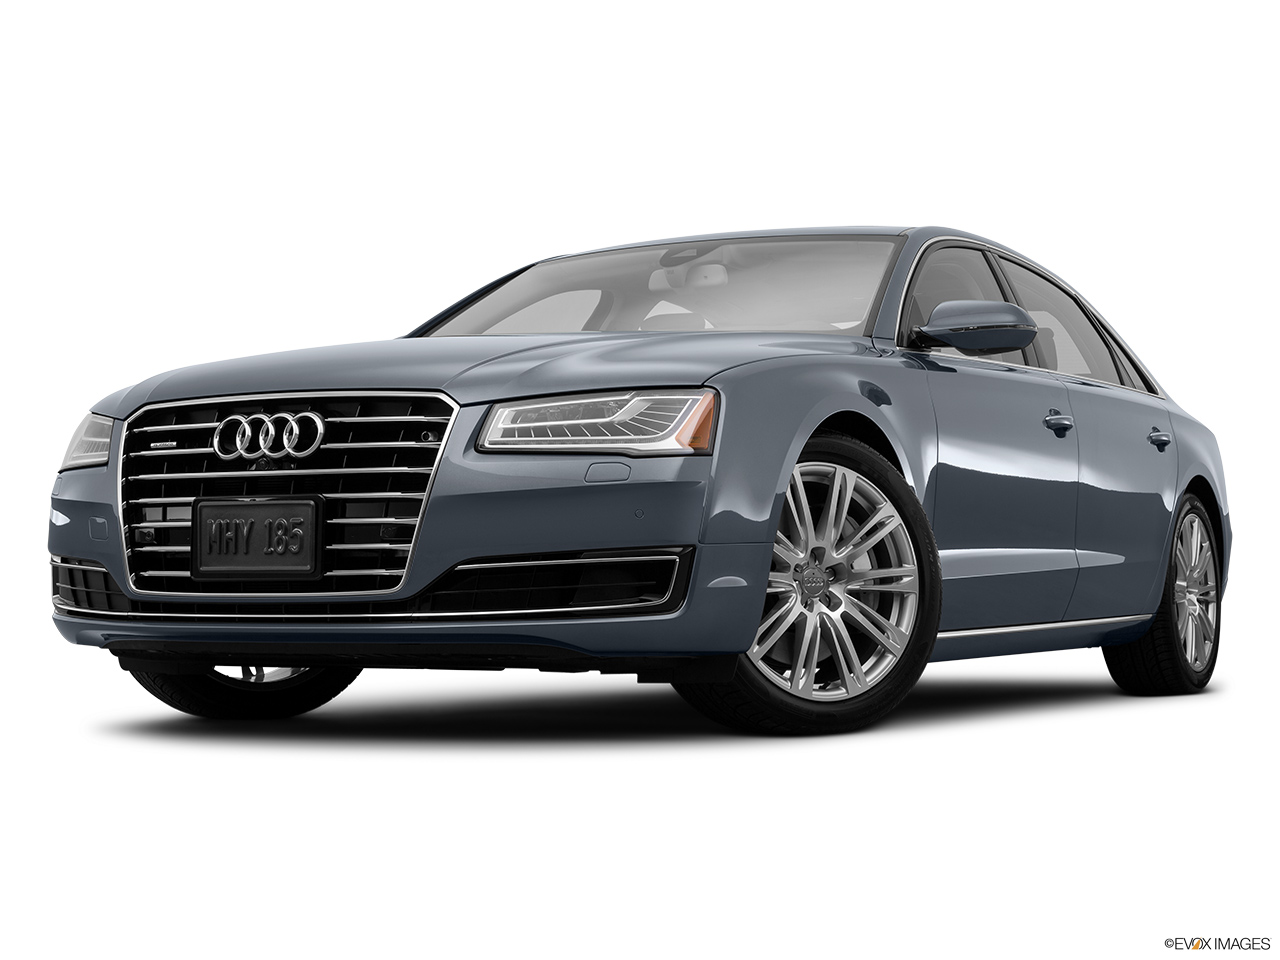 2015 Audi A8 L Sedan 6 3l Front Angle View Low Wide